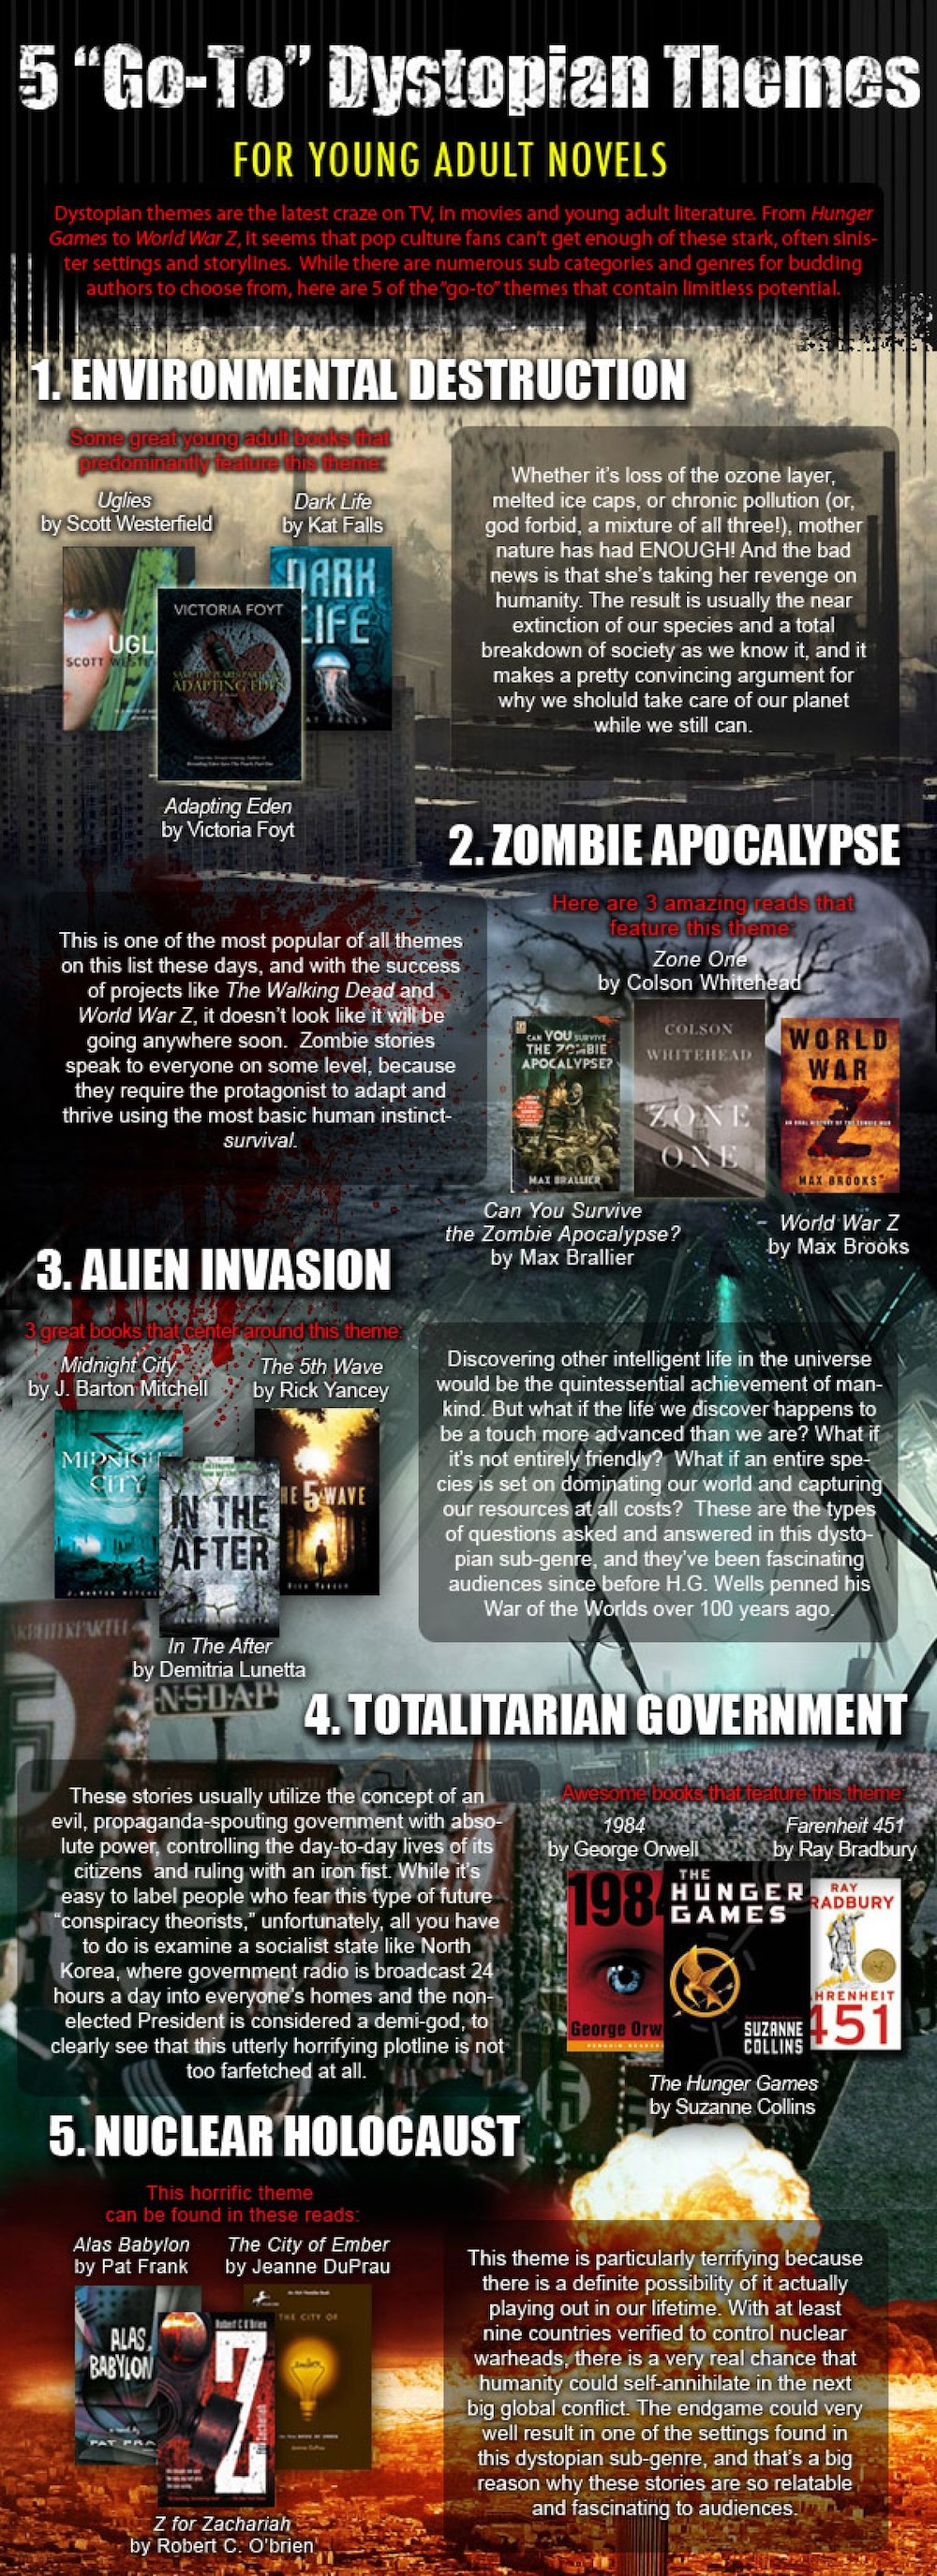 5-goto-dystopian-themes-for-young-adult-novels_51dc4633b4ef9_w1500